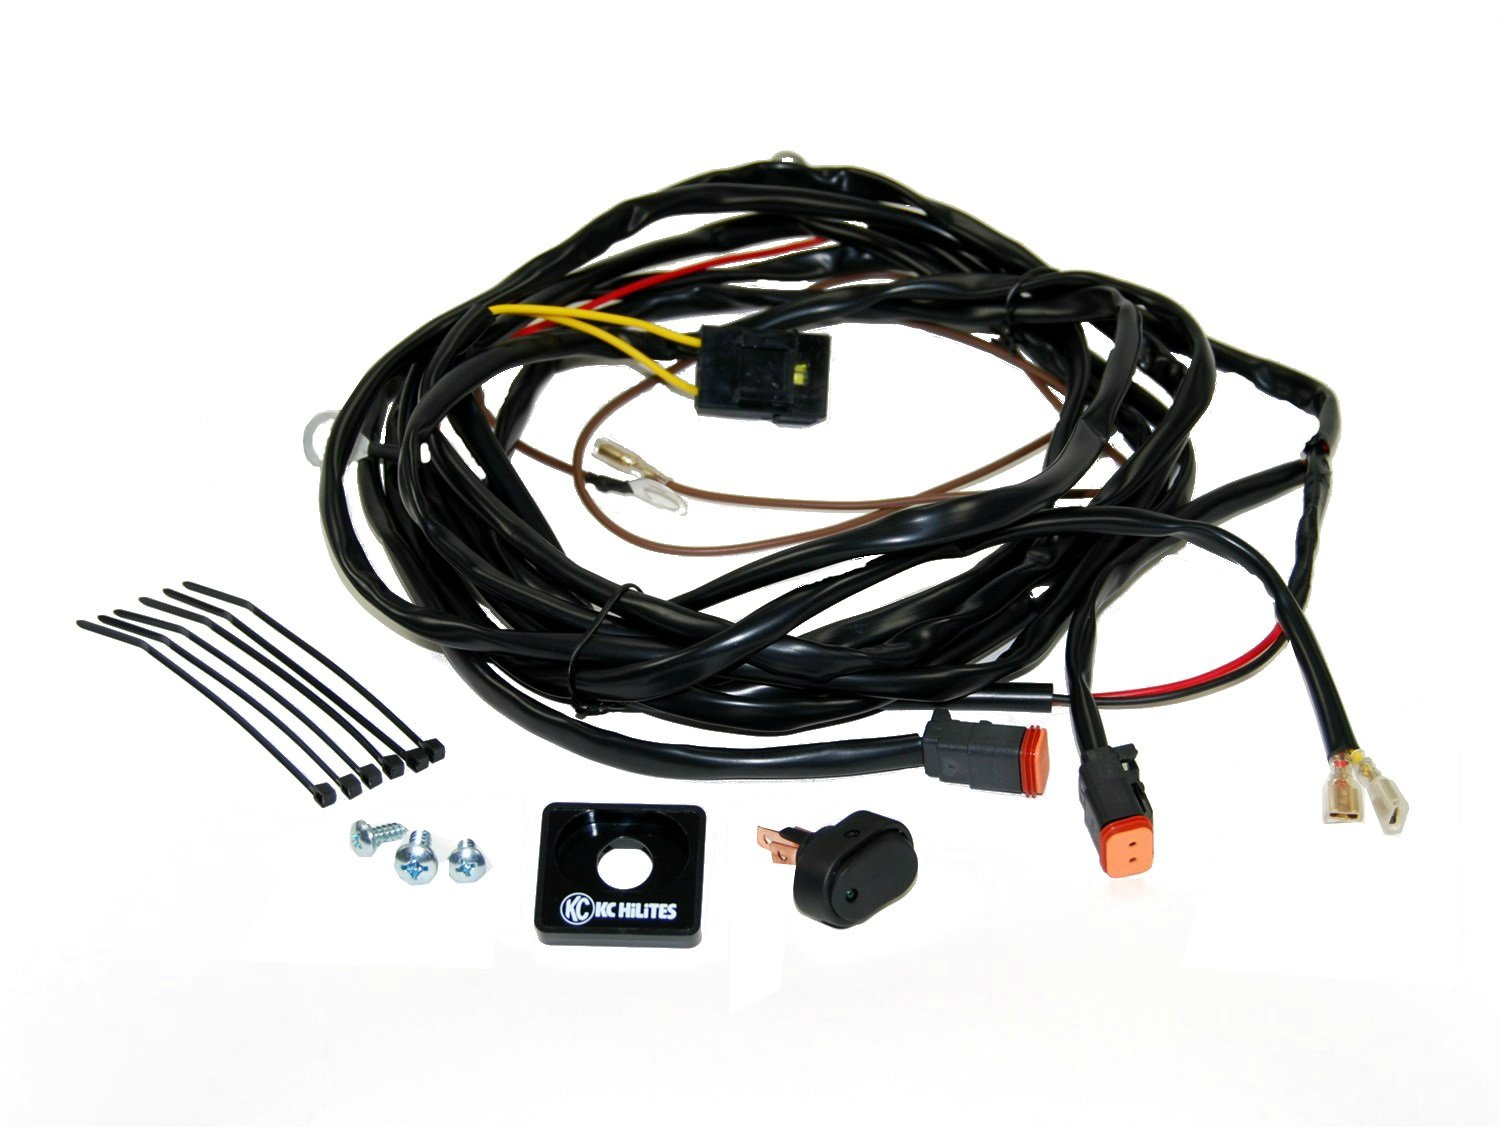 718WMAThaiL._SL1500_ amazon com kc hilites (6308) 110w wiring harness with 2 pin 16 Pin Wire Harness Diagram at aneh.co